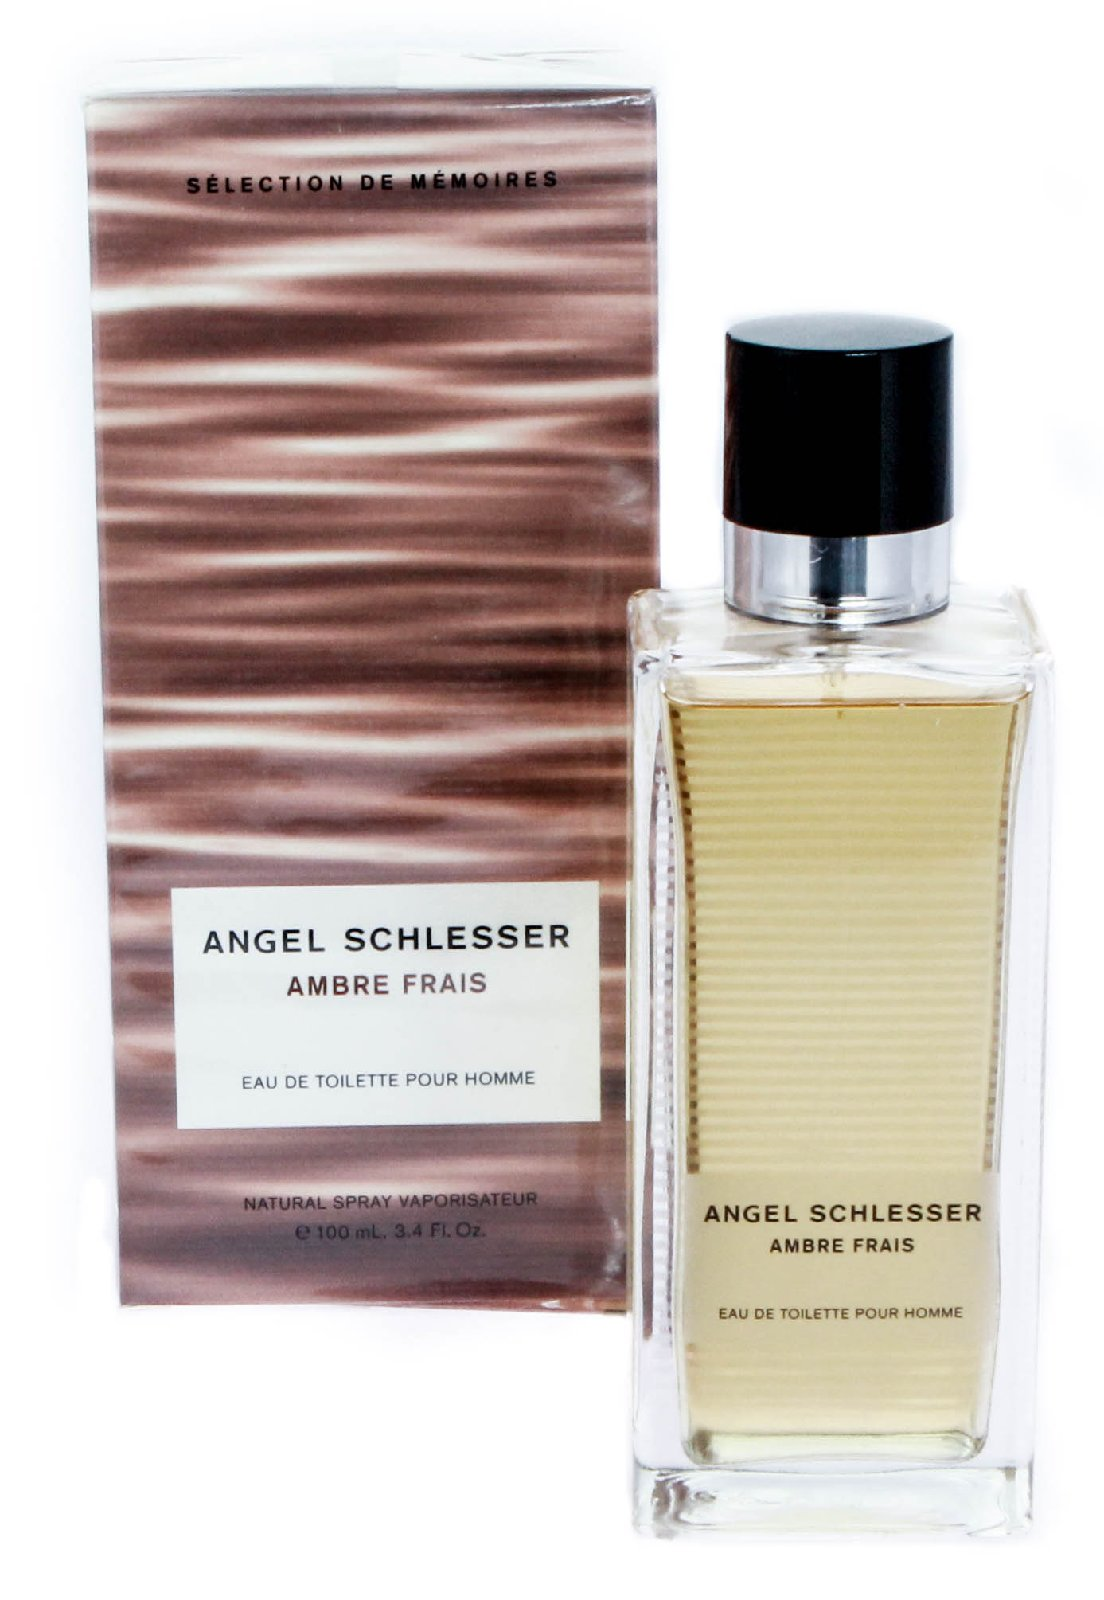 angel schlesser ambre frais pour homme 100ml eau de toilette neu ovp ebay. Black Bedroom Furniture Sets. Home Design Ideas